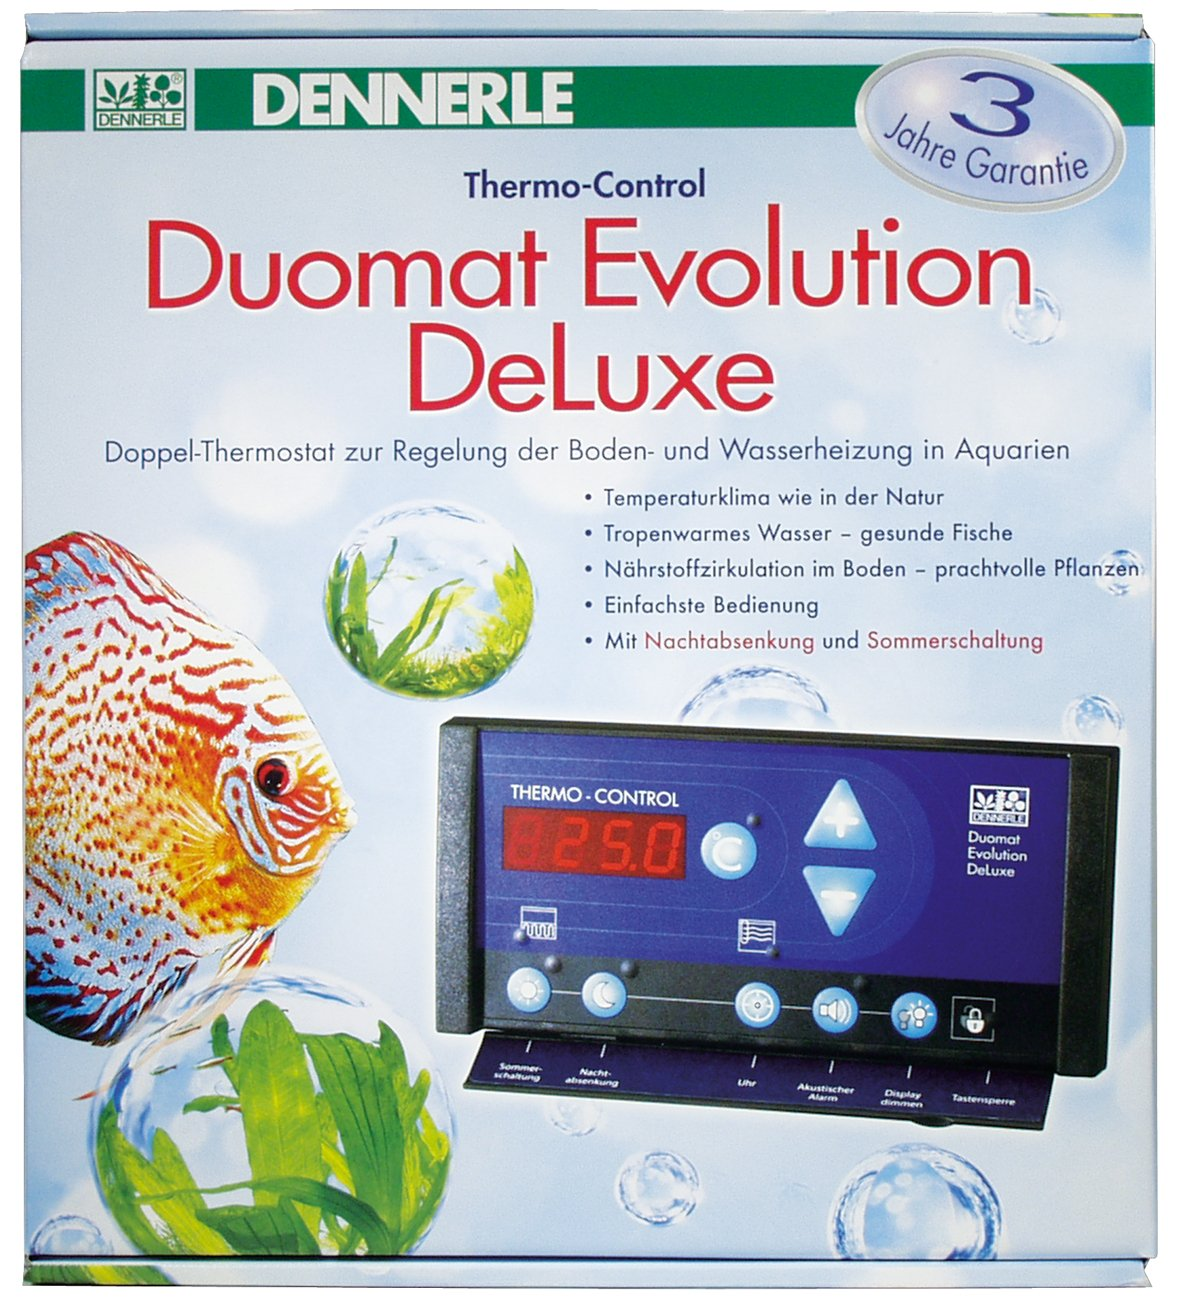 Dennerle Duomat Evolution Deluxe Doppelthermostat fuer Aquarien